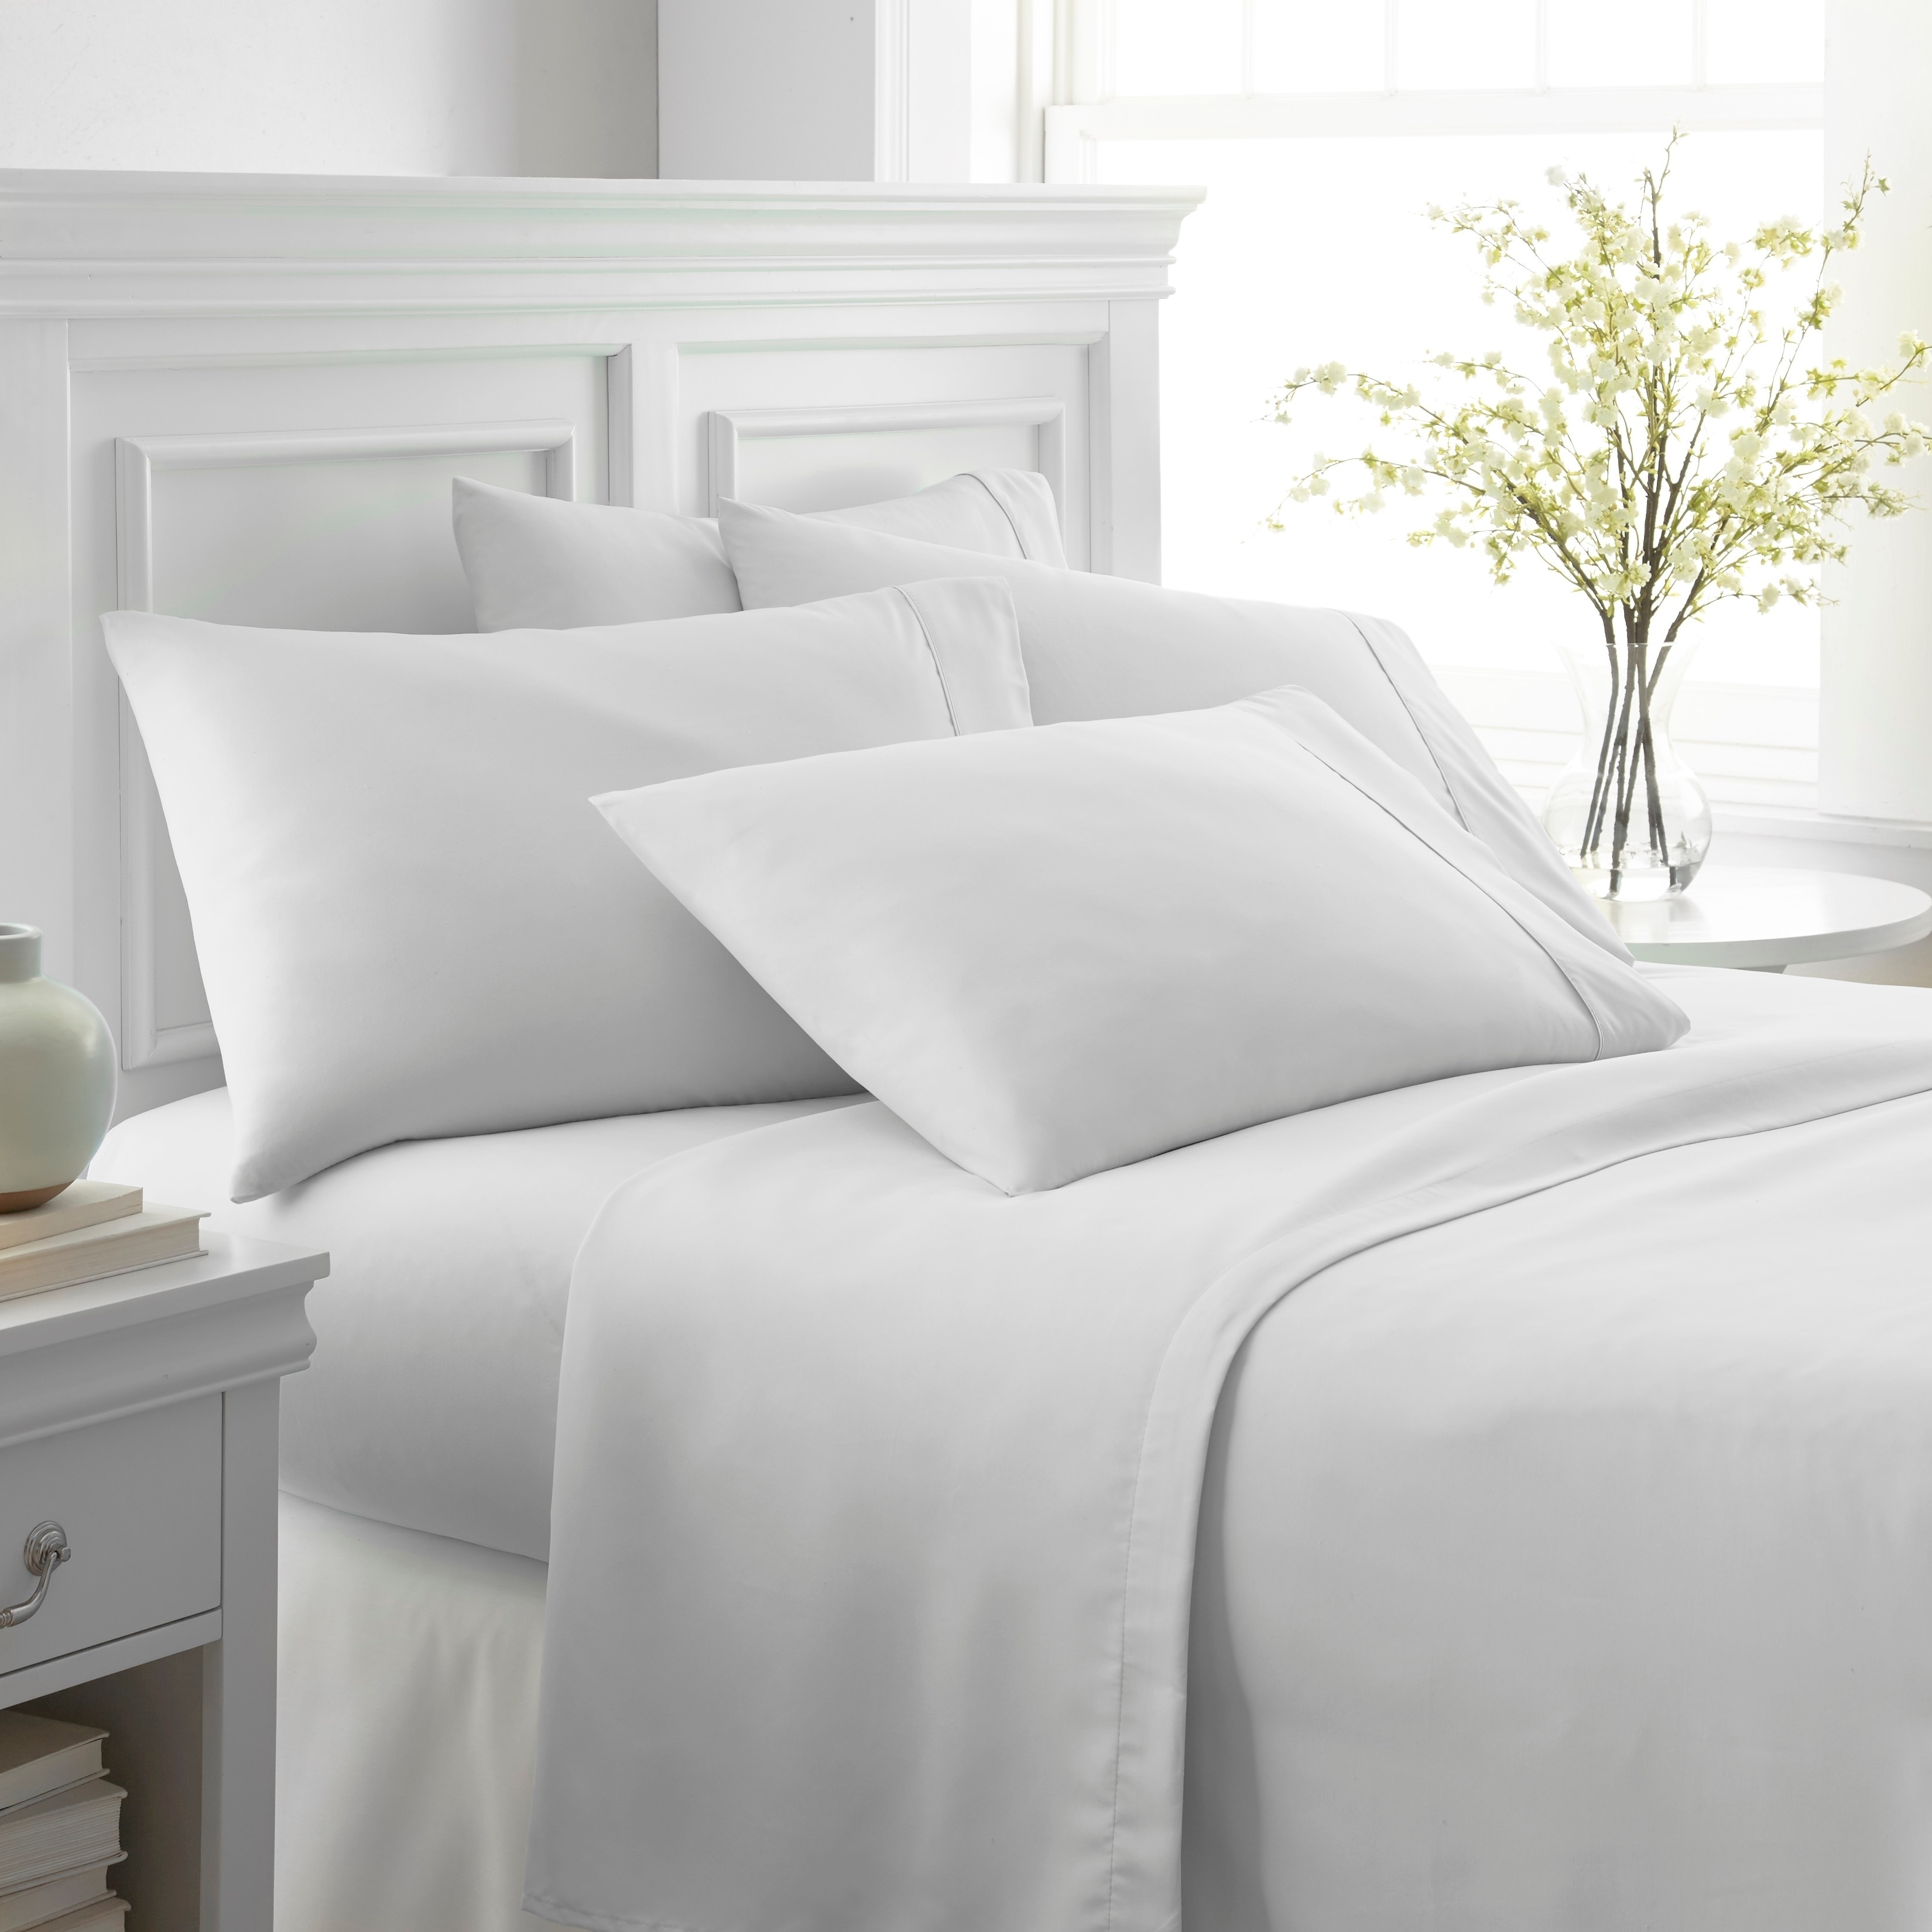 Merit Linens Ultra Soft 6 Piece Bed Sheet Set On Free Shipping Orders Over 45 10529098